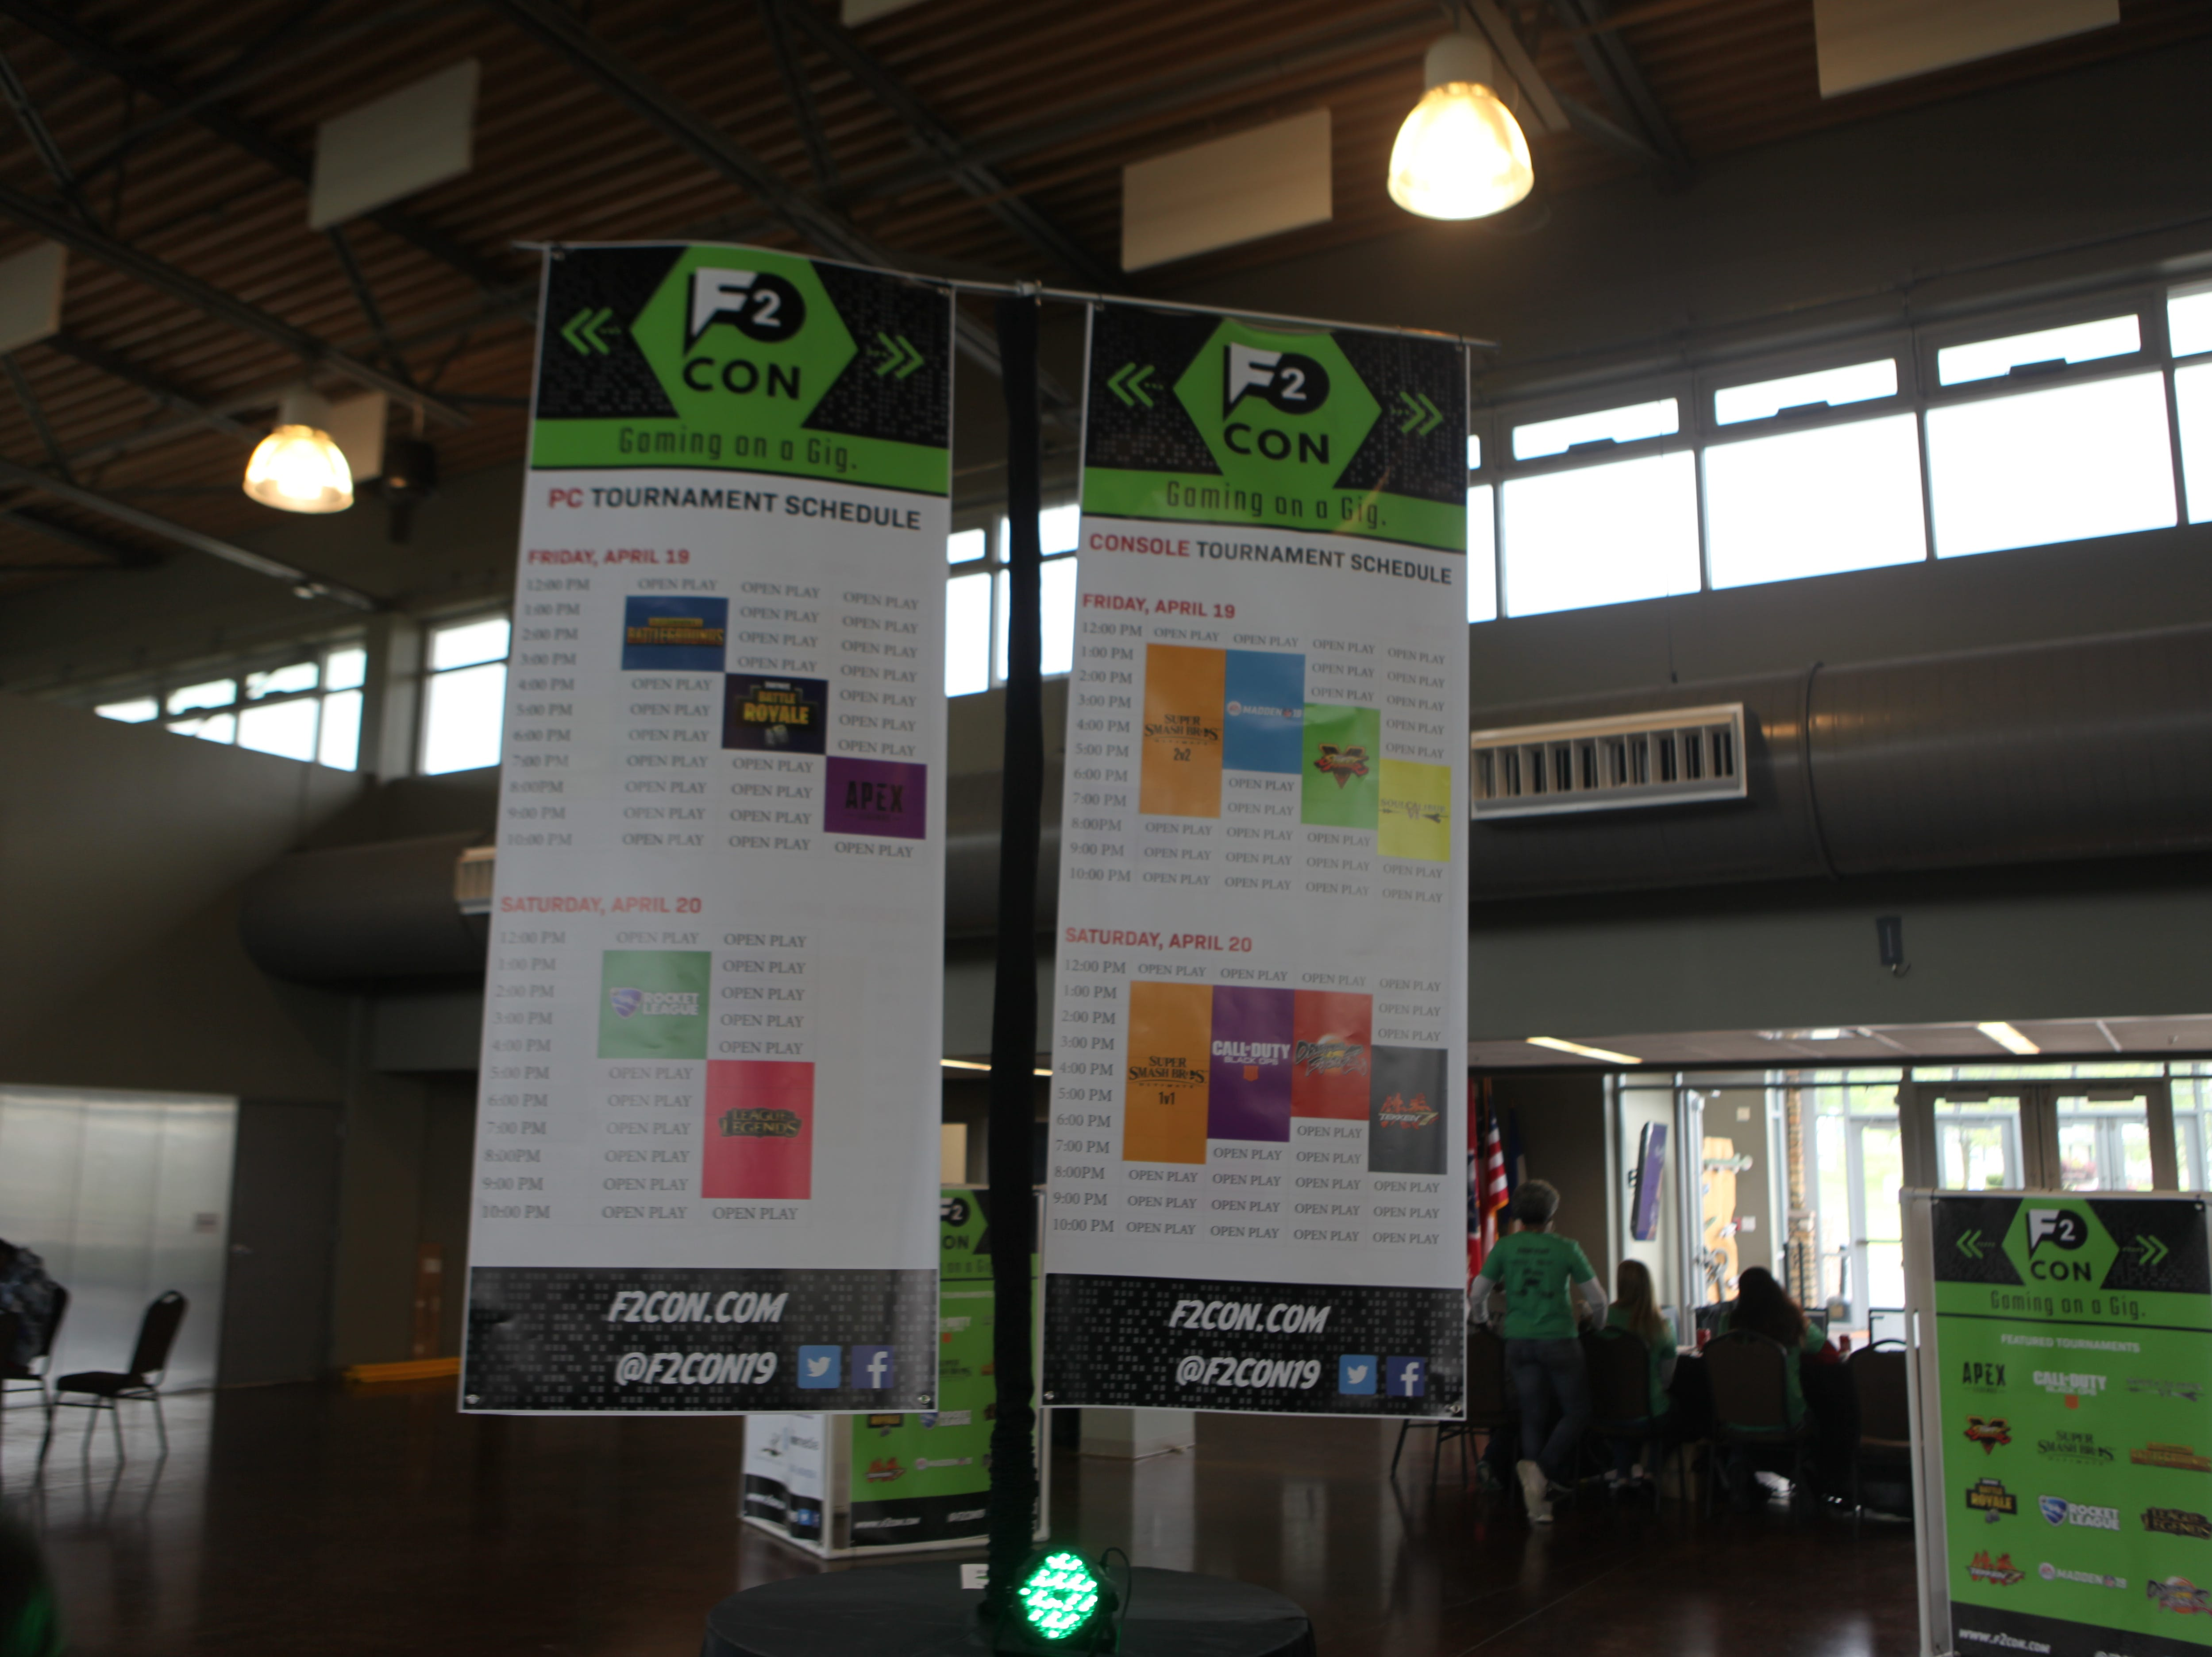 Visit Clarksville, CDE Lightband and Clarksville Parks and Recreation hosted the second annual F2 Con Gaming Tournament at the Wilma Rudolph Event Center April 19-20, 2019.